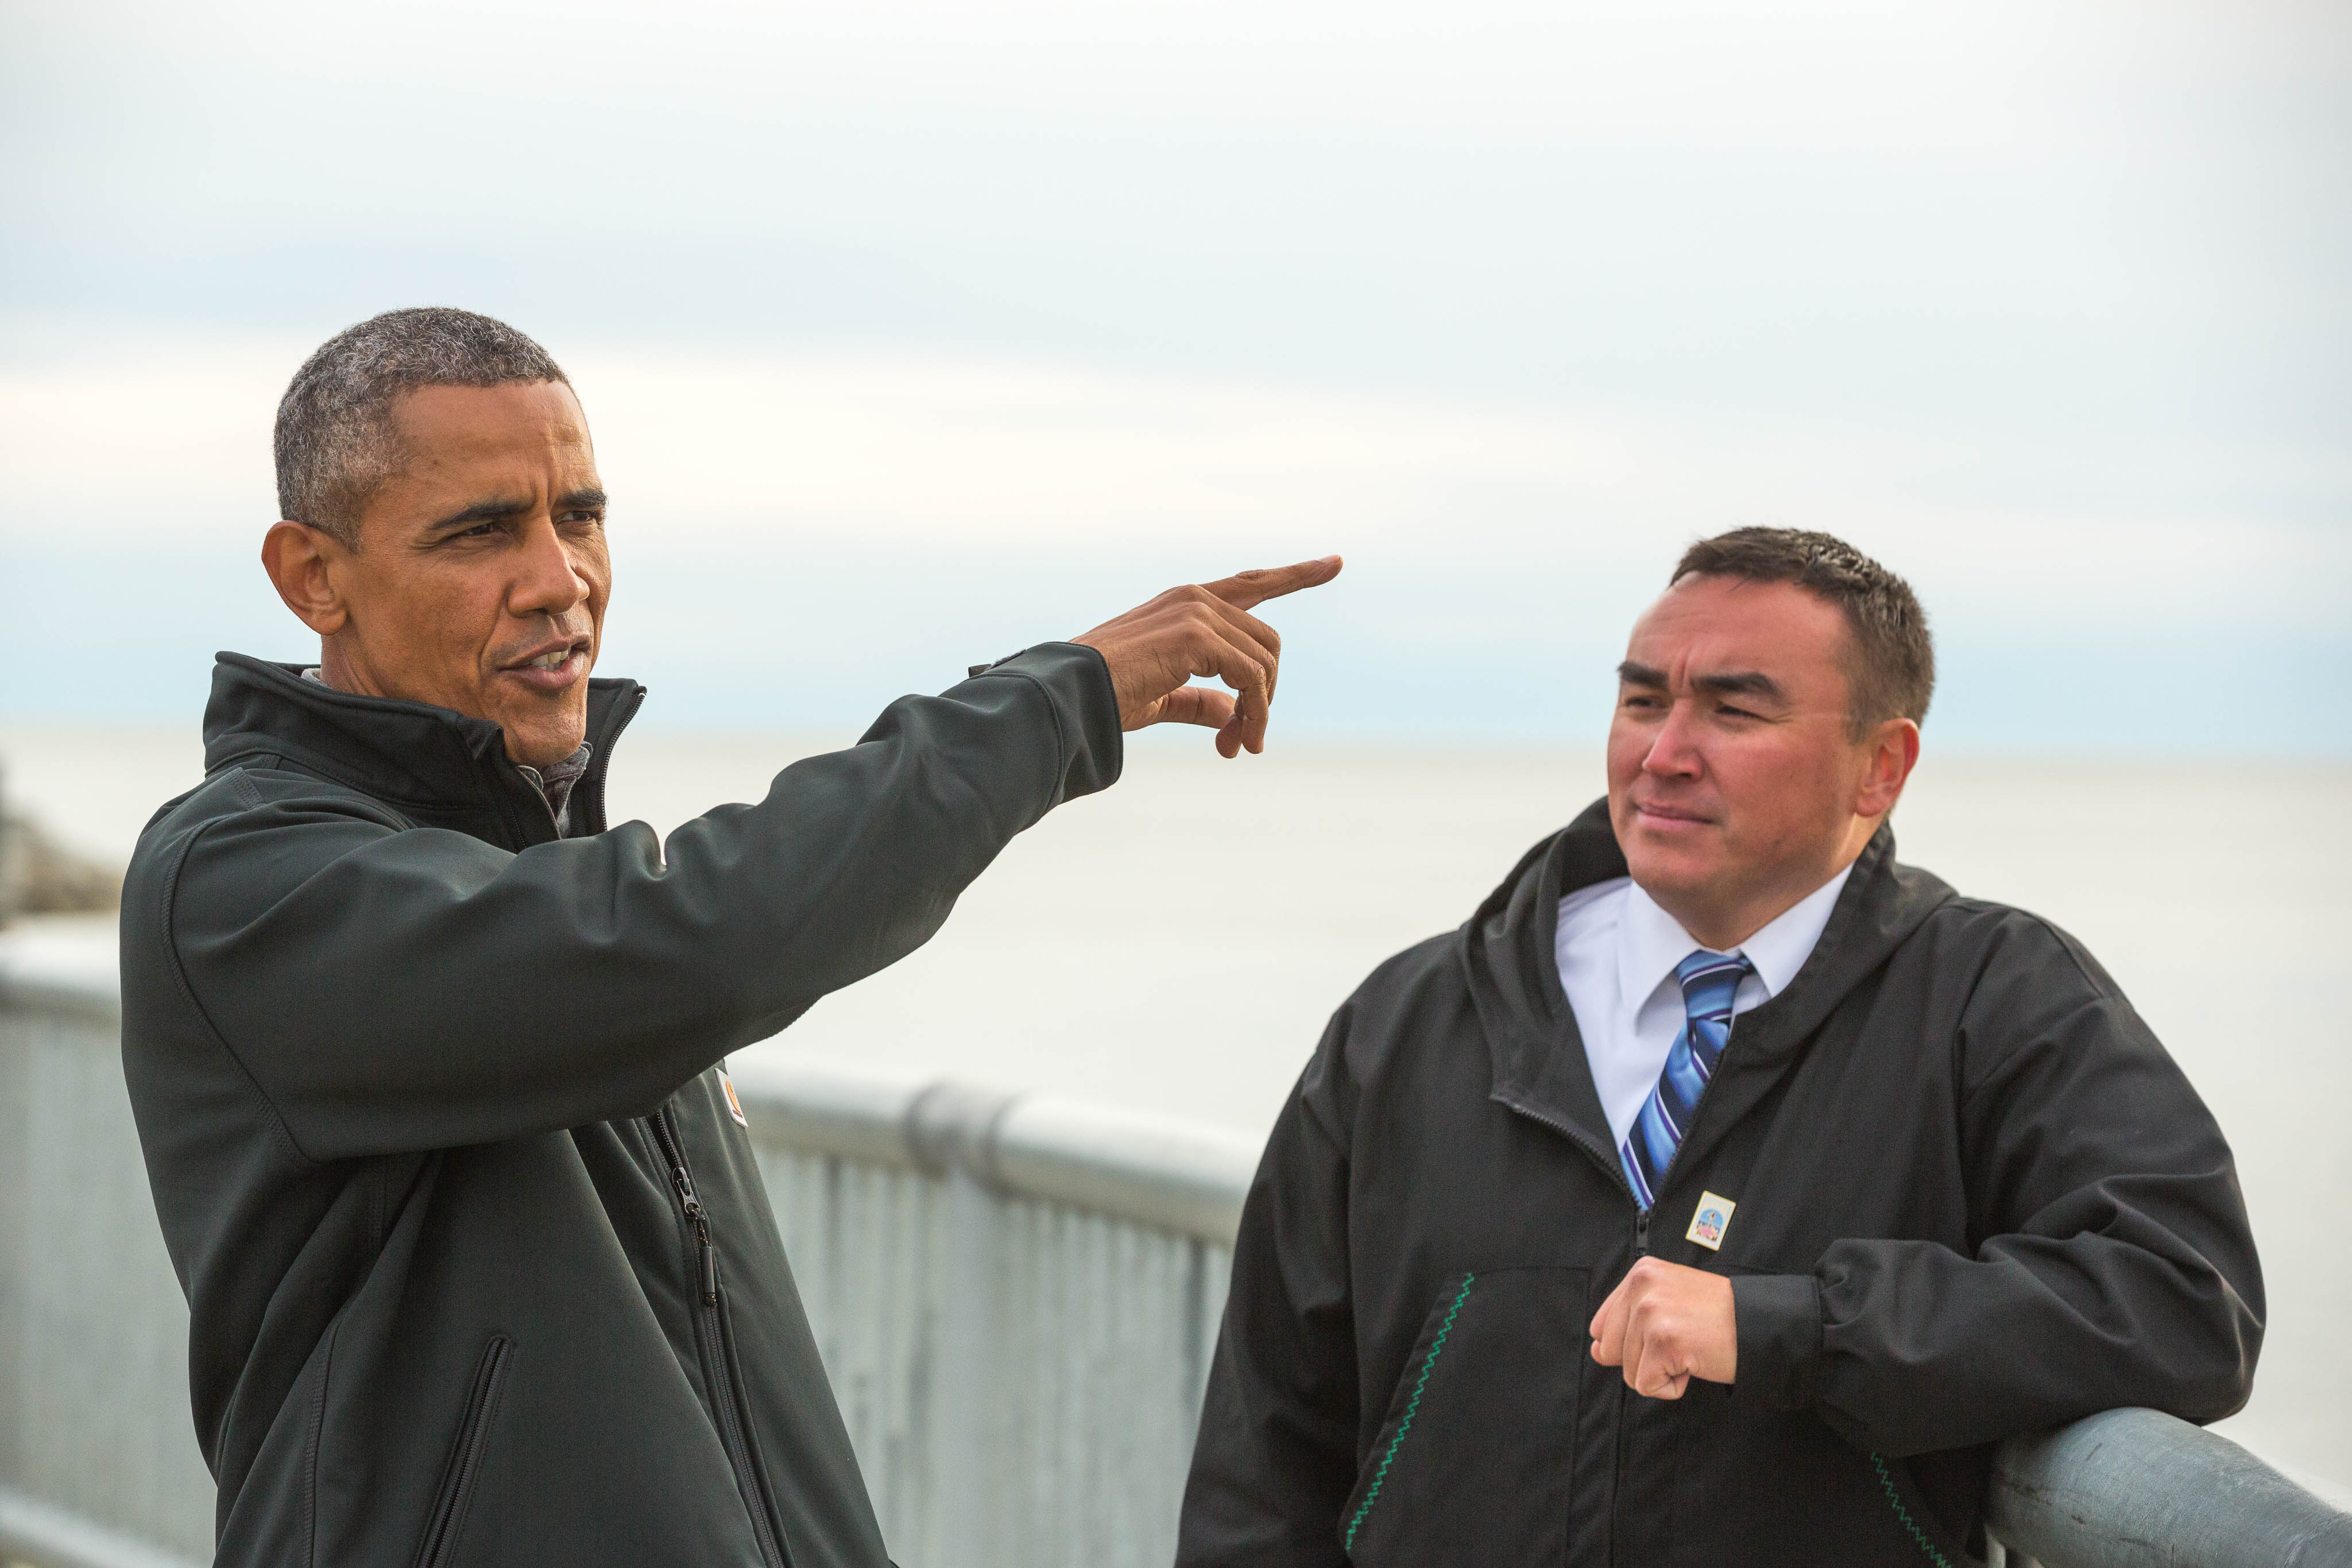 With Kotzebue City Manager Derek Martin, President Obama views the seawall that protects the community from winter storm surges on Wednesday, September 2, 2015. (Loren Holmes / Alaska Dispatch News)